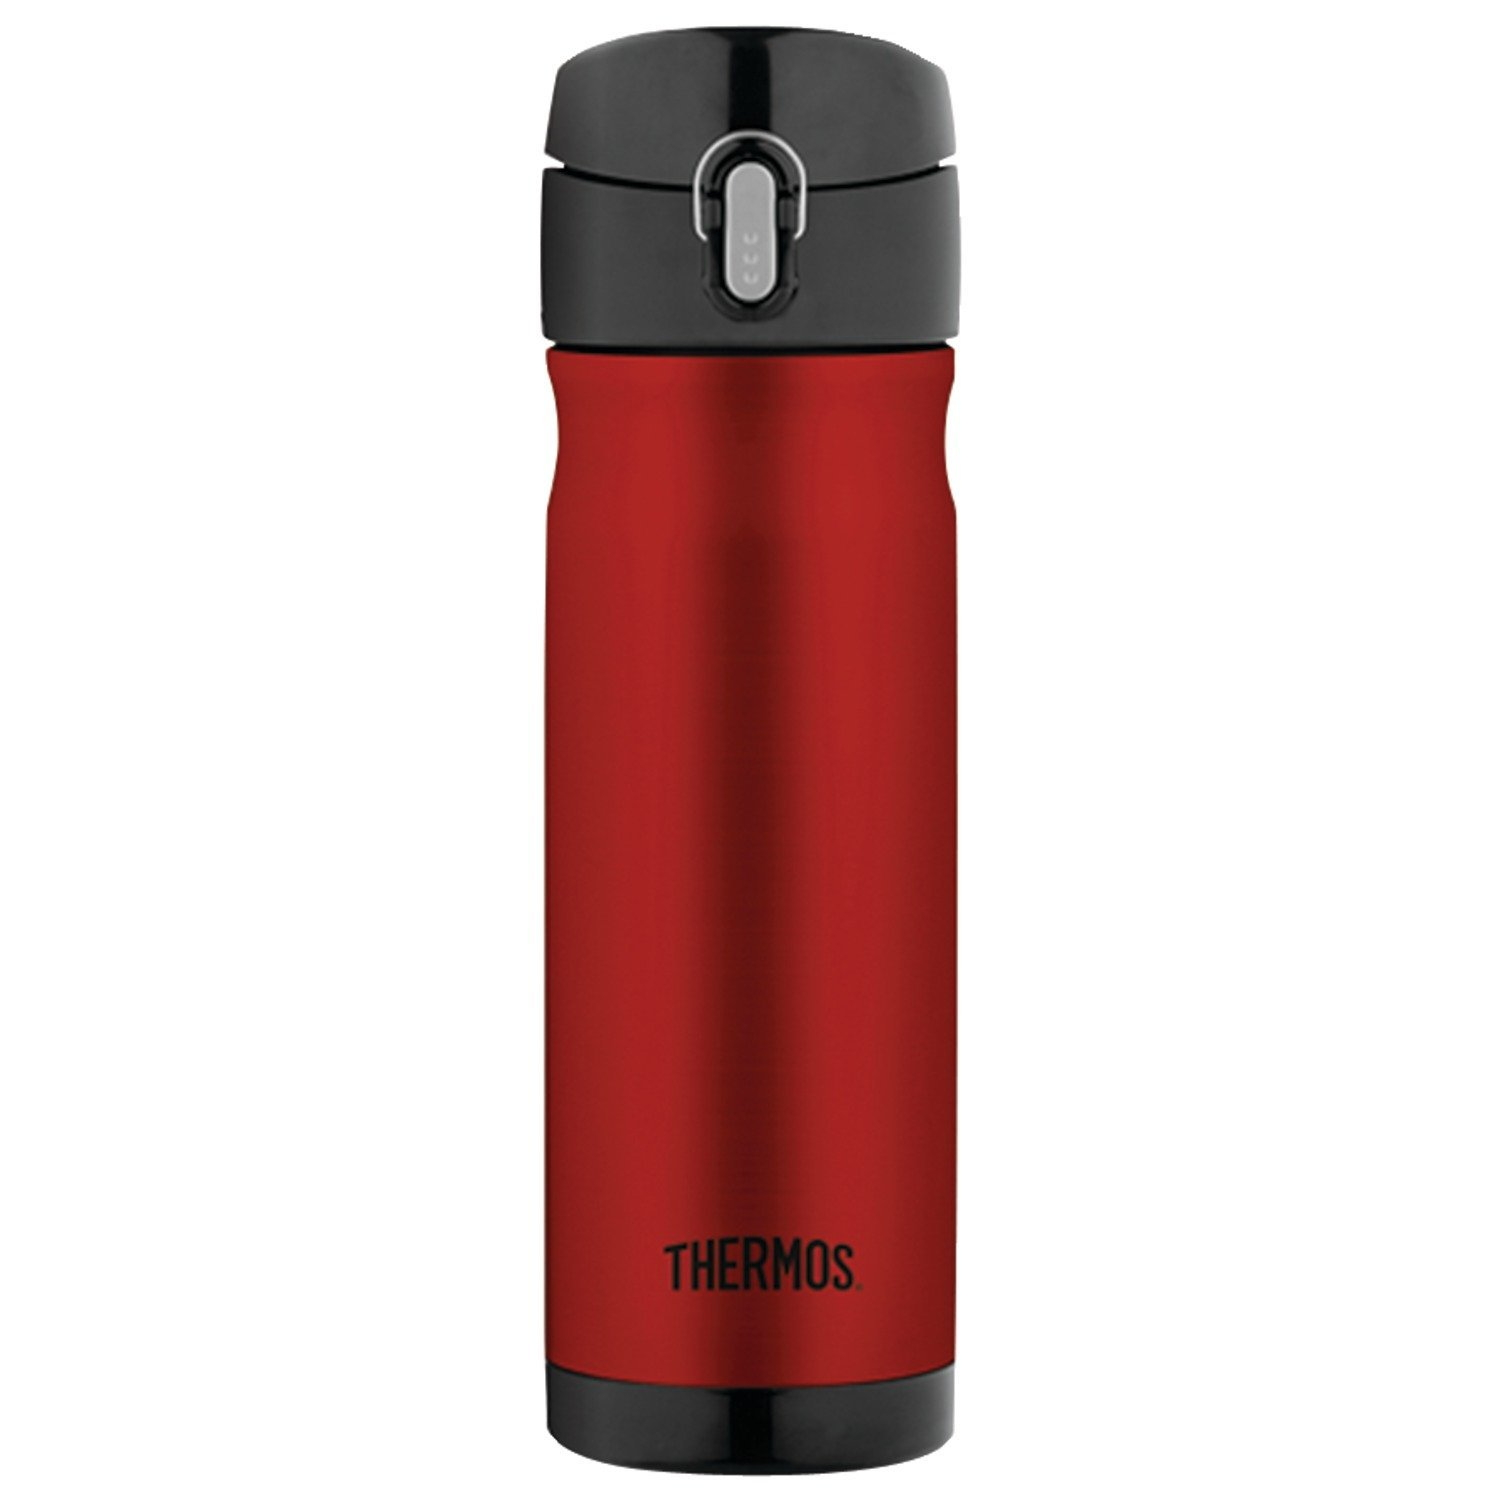 Thermos Cranberry and Black Stainless Steel Vacuum Insulated 16 Ounce Hydration Bottle